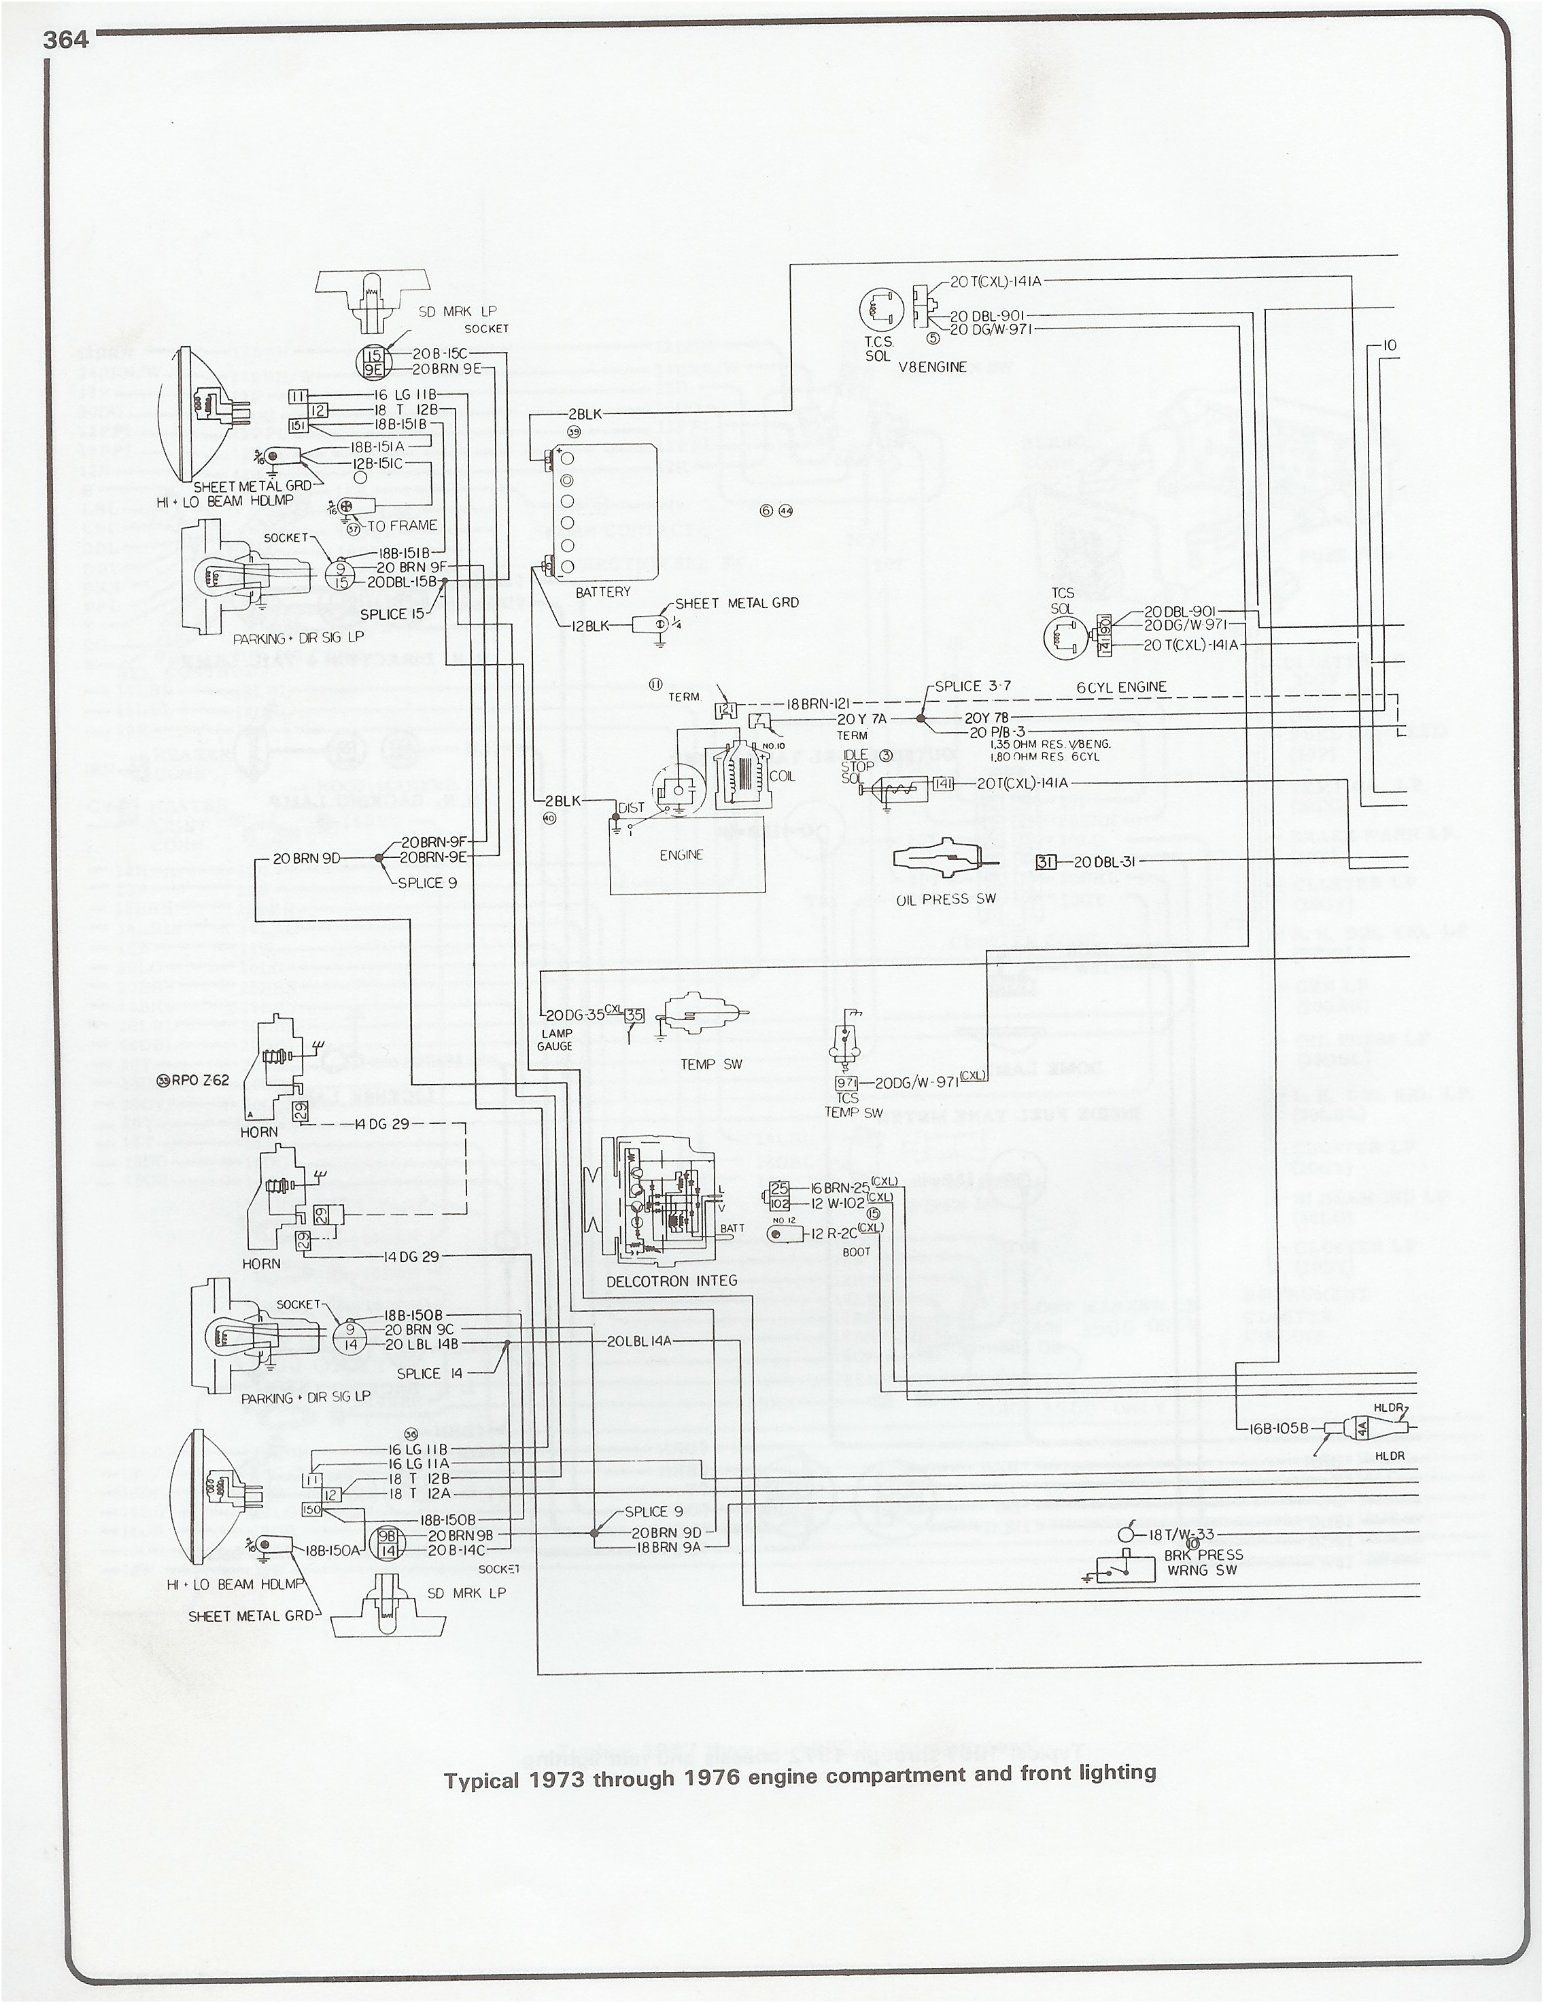 small resolution of wiring diagram 1973 1976 chevy pickup chevy wiring diagramwiring diagram 1973 1976 chevy pickup chevy wiring